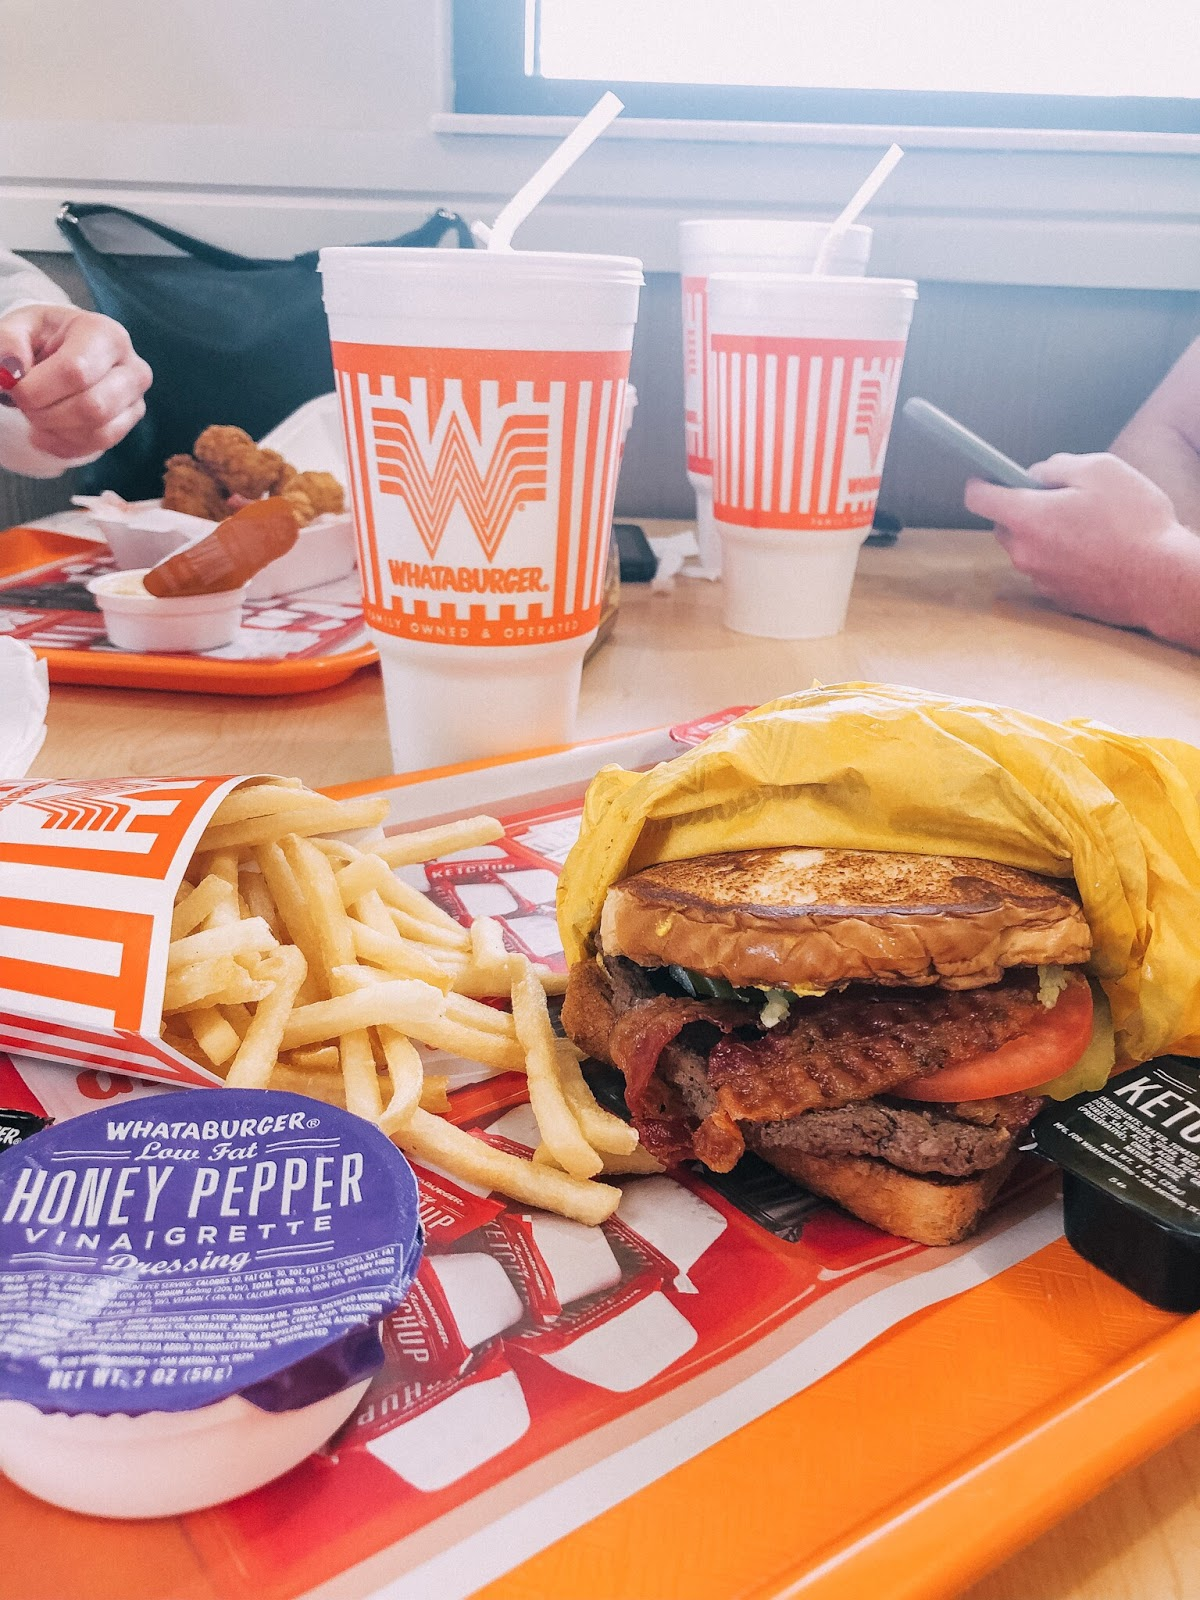 Pit stop at Whataburger on a road trip. We ordered the Jalapeño and Cheese Whataburger on Texas Toast